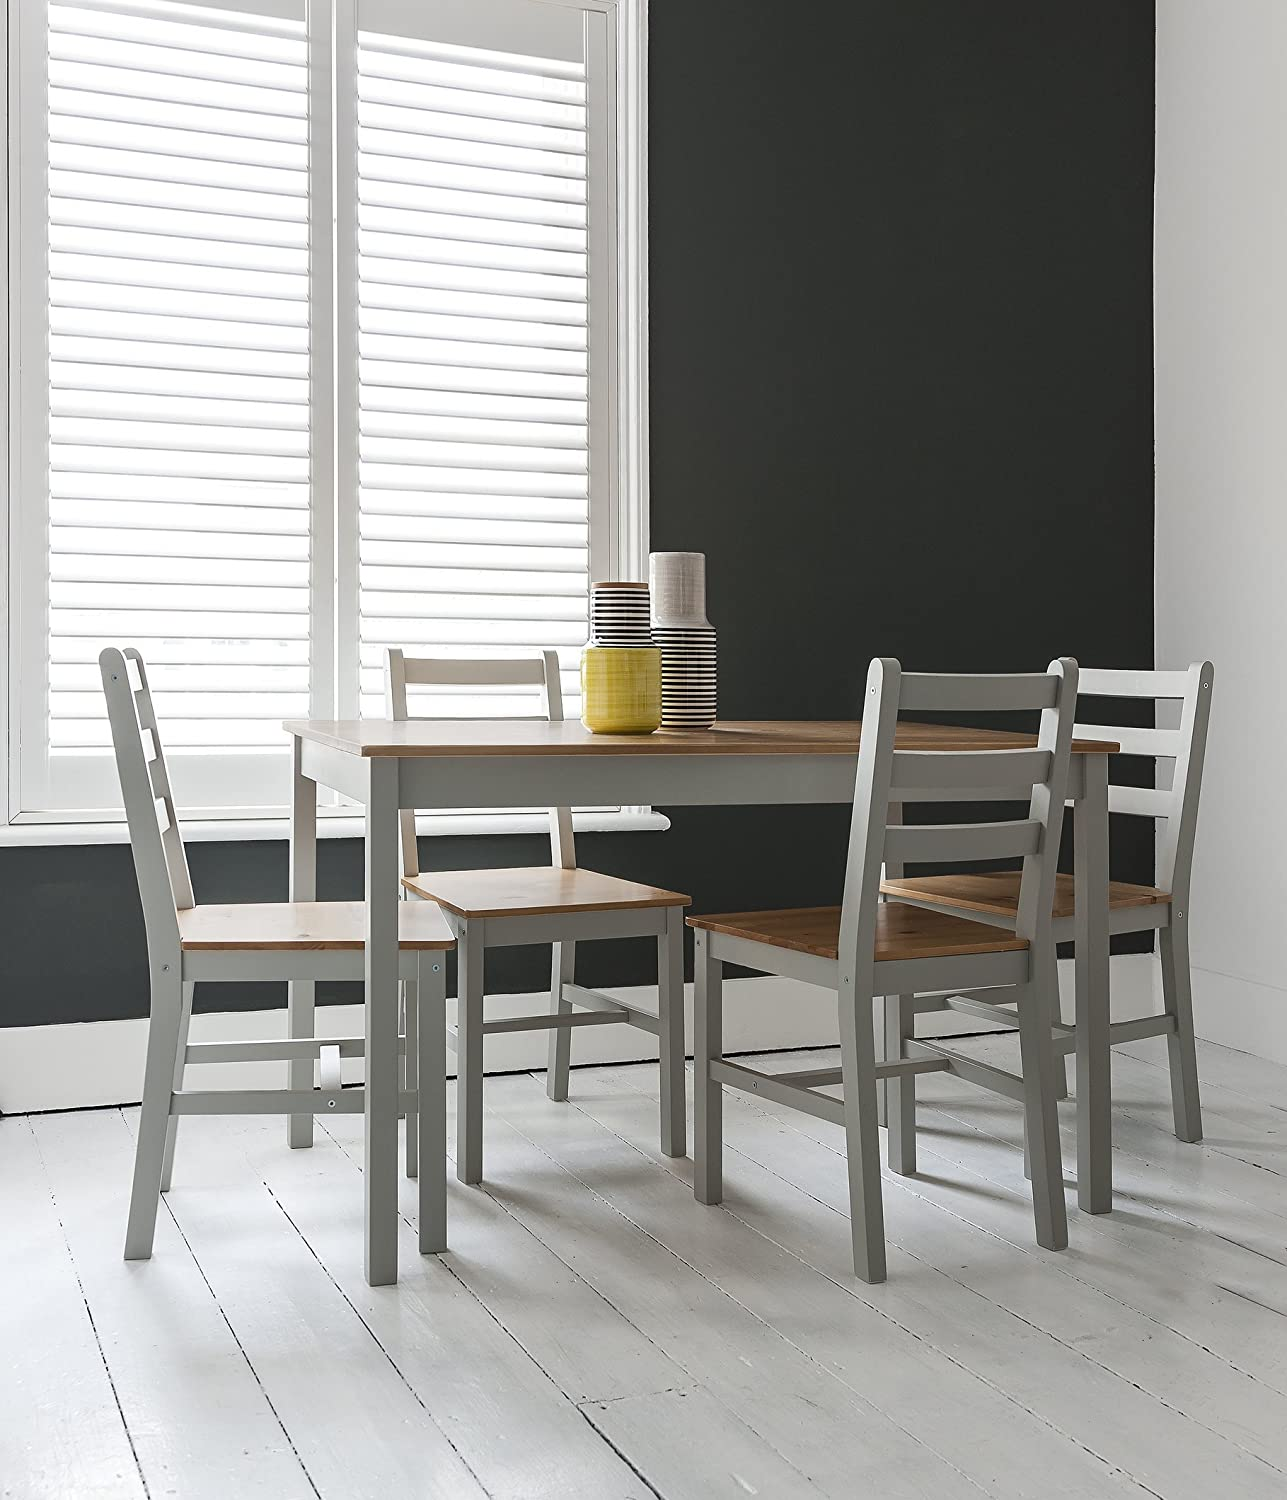 for table din at john main online lewis liv buybethan gray pdp newman bethan extending johnlewis seater rsp dining